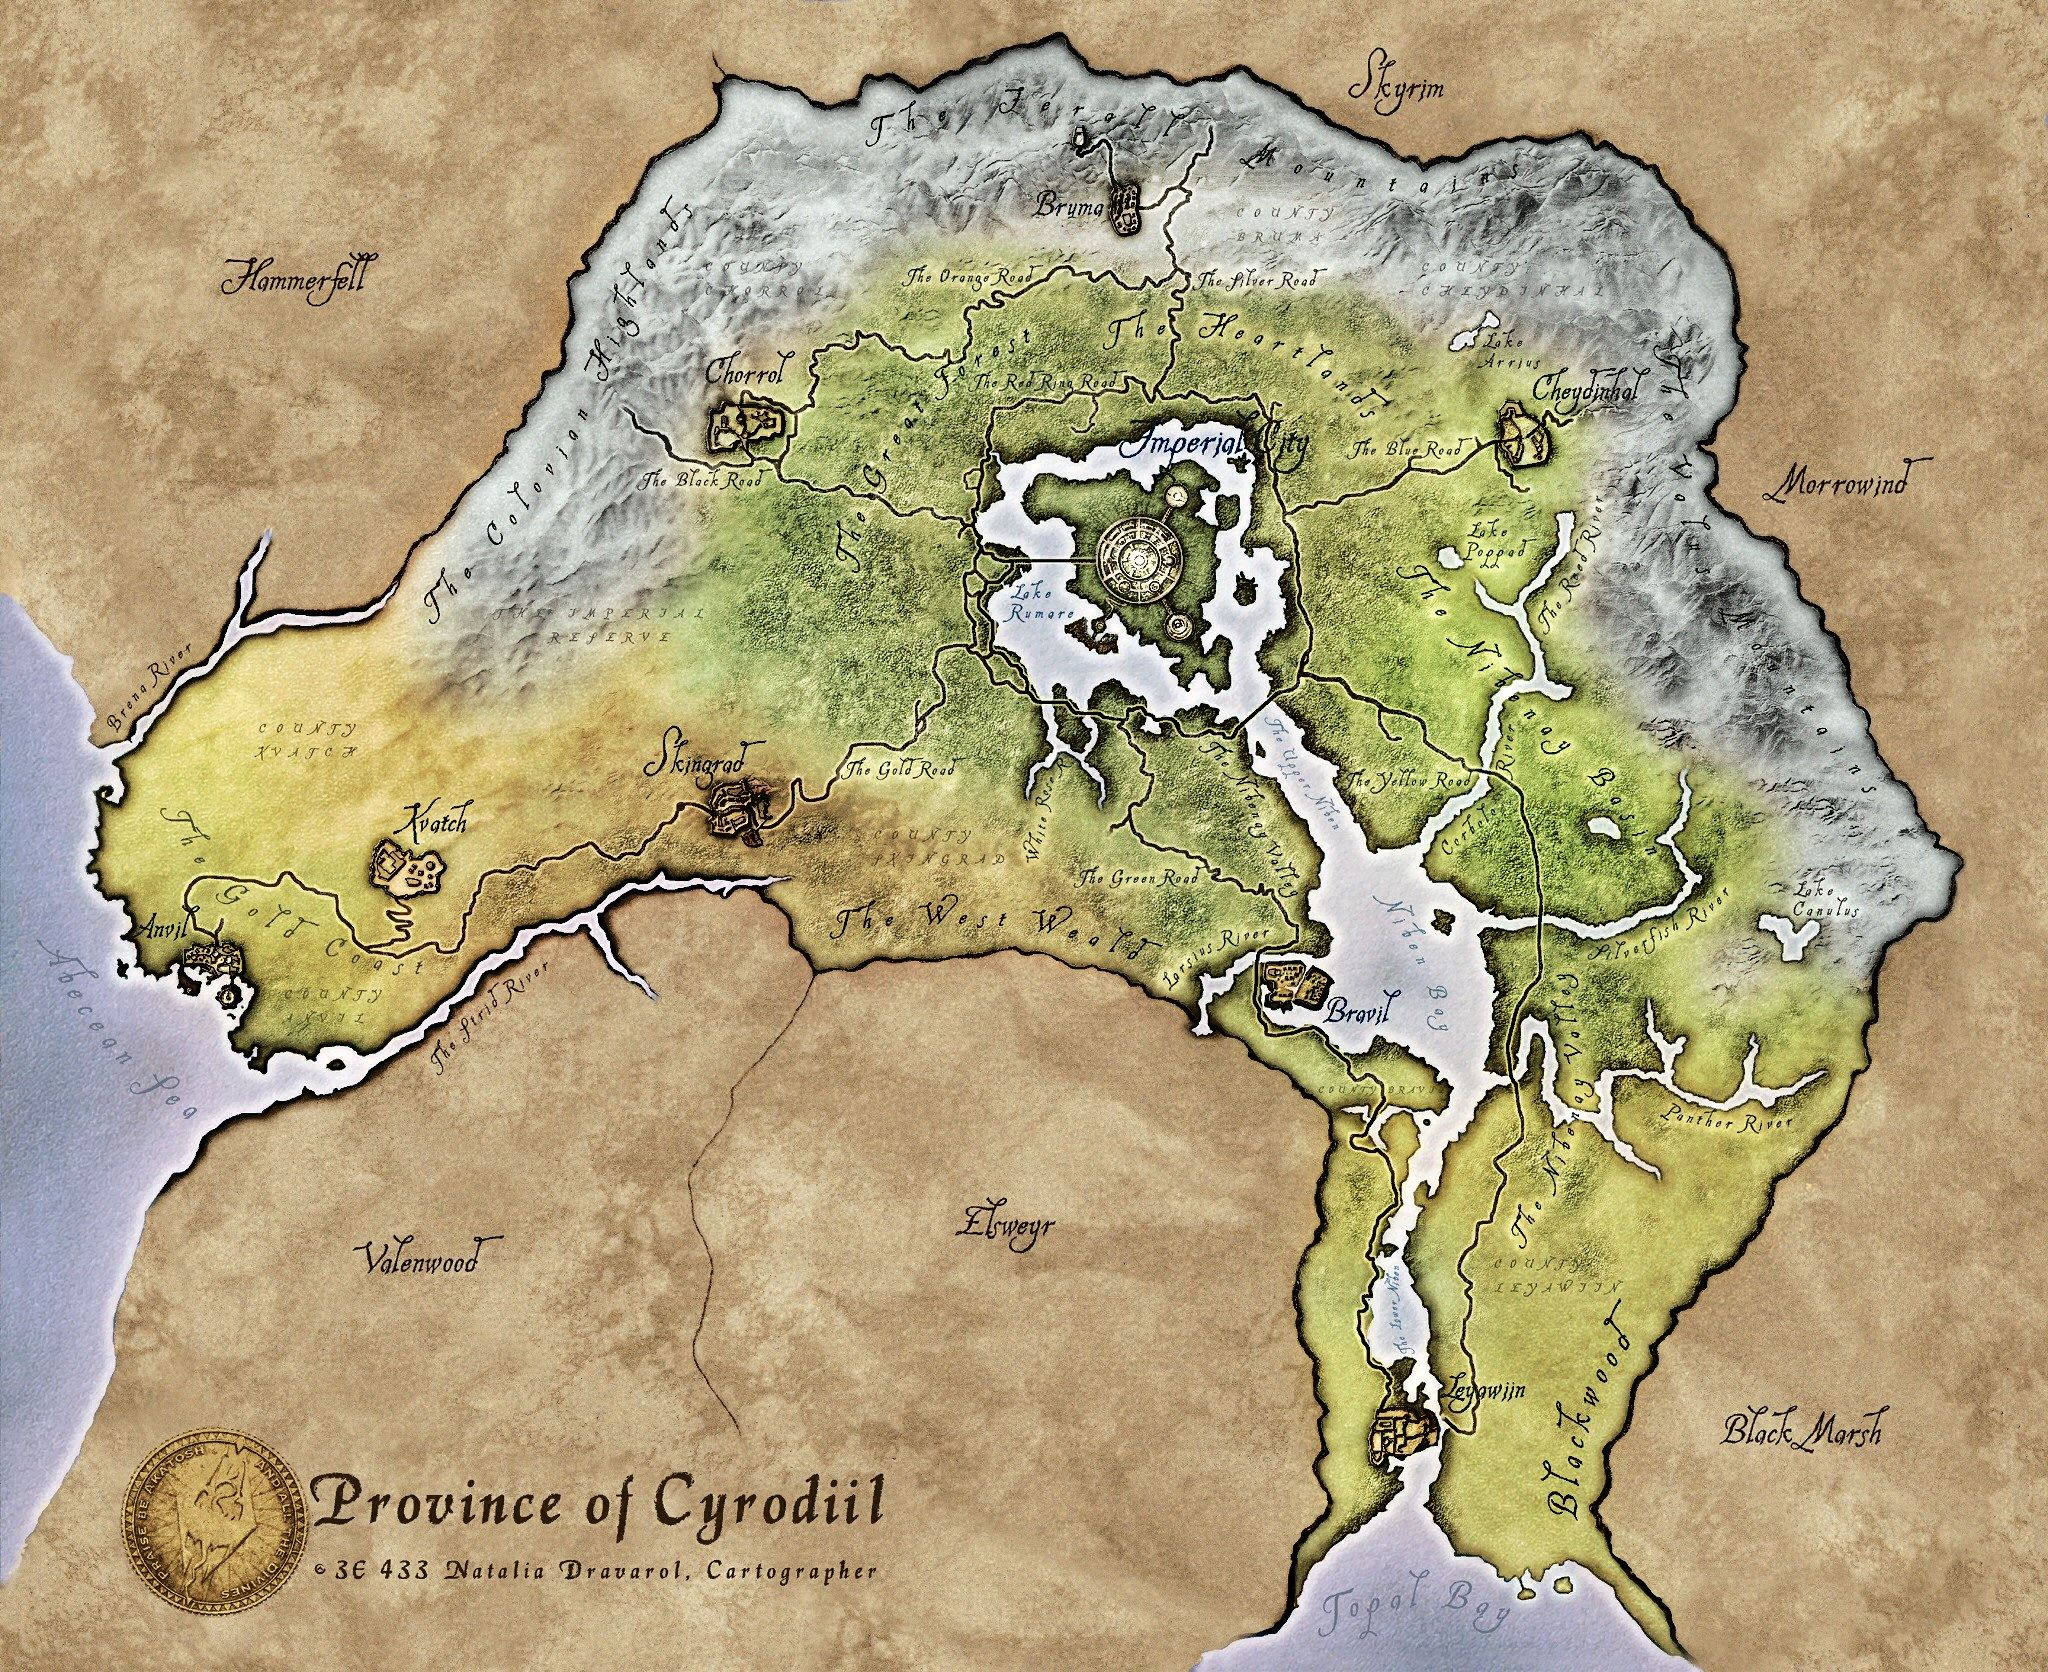 Province of cyrodiil in tamriel map for the elder scrolls iv province of cyrodiil in tamriel map for the elder scrolls iv oblivion gumiabroncs Choice Image